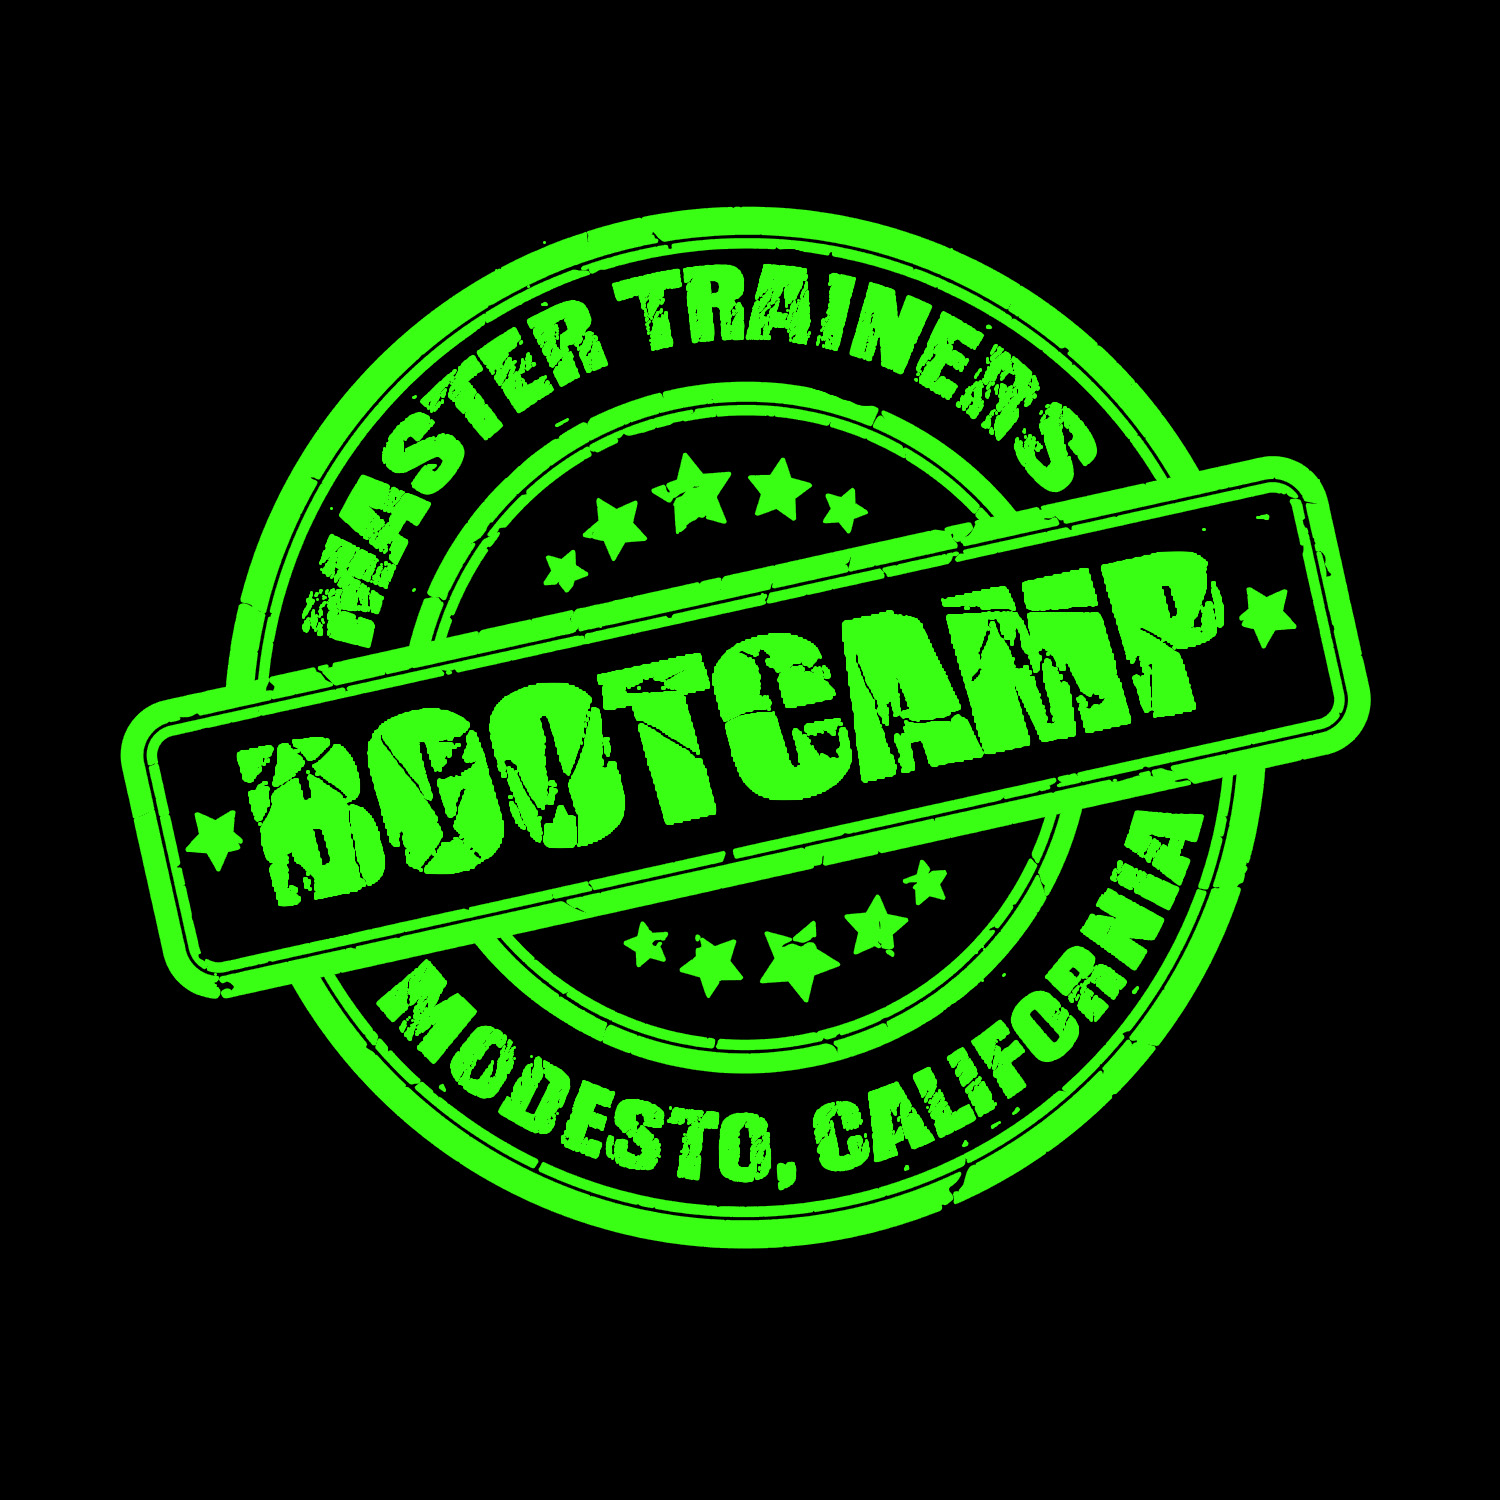 Master Trainers of CA Logo